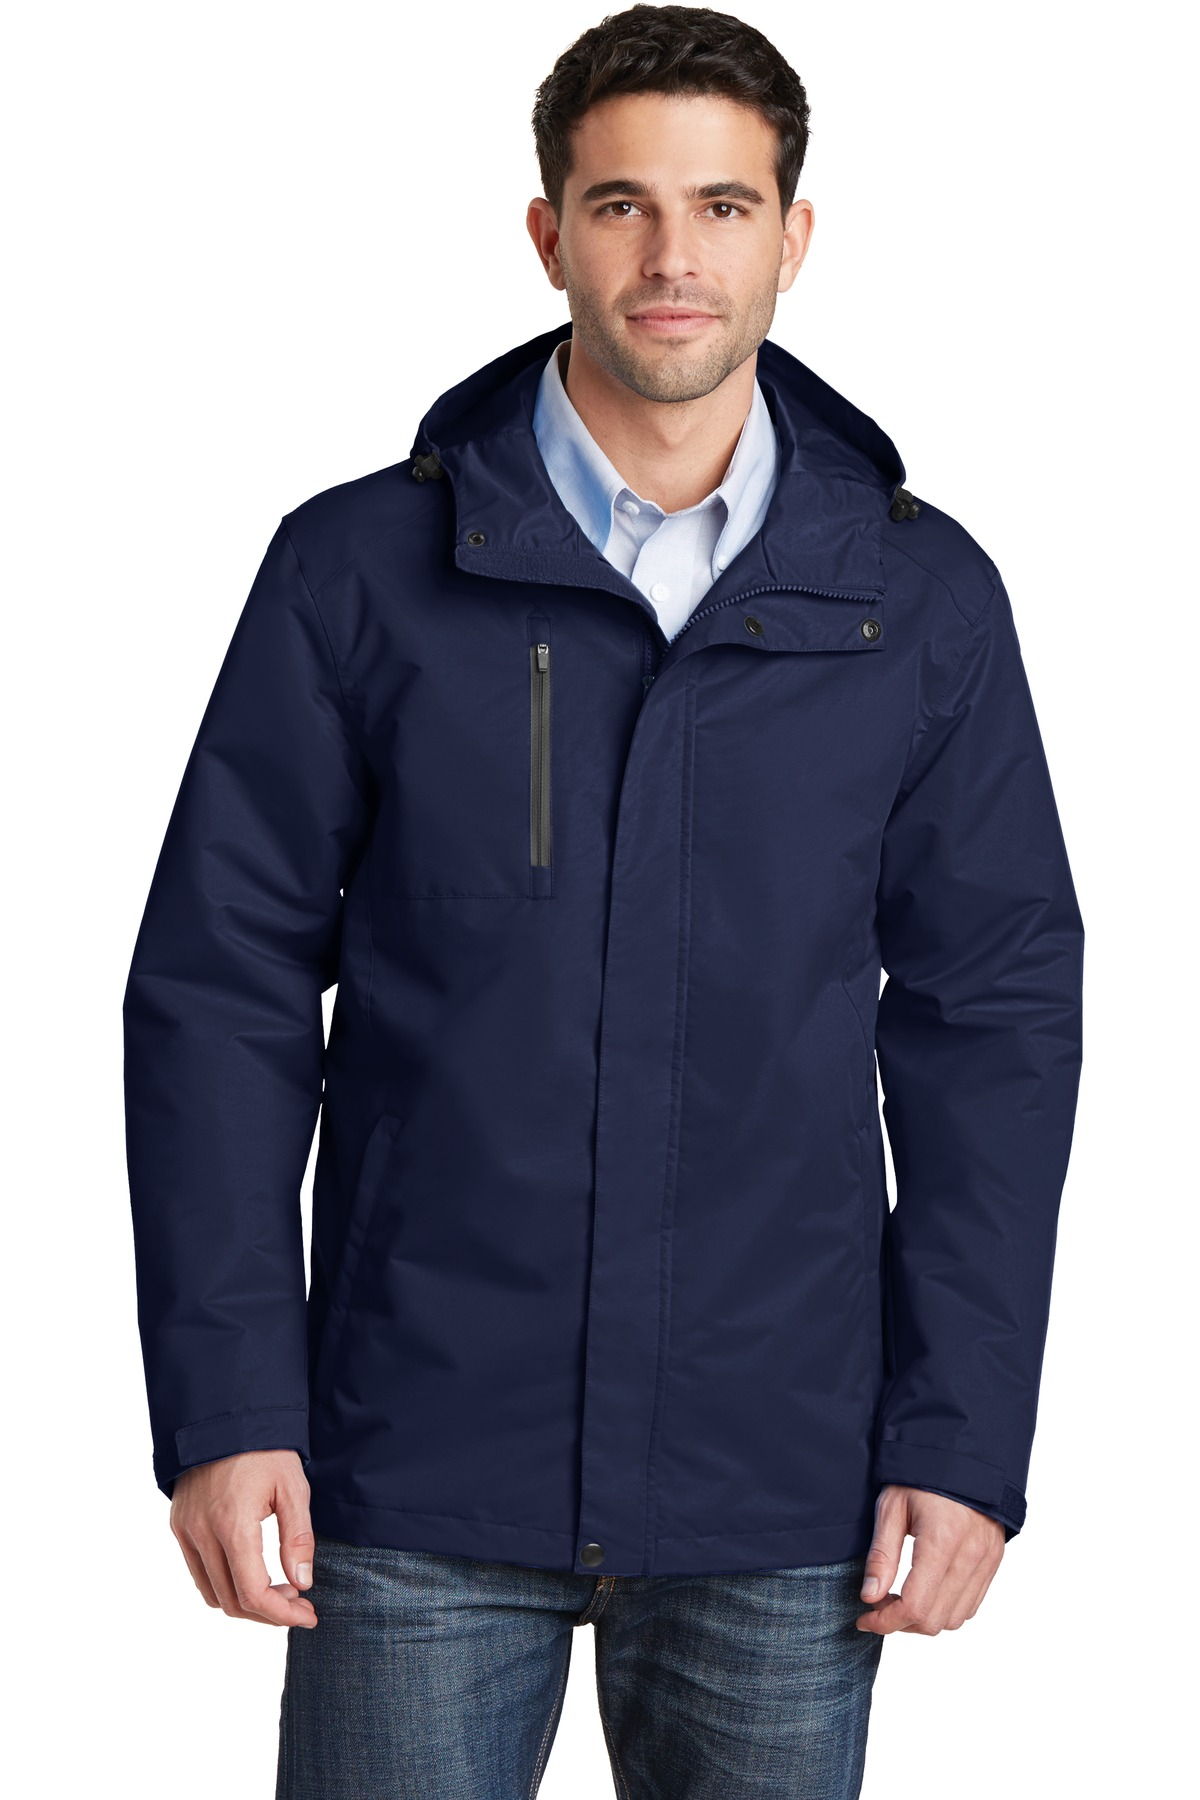 Port Authority  J331 - All-Conditions Jacket